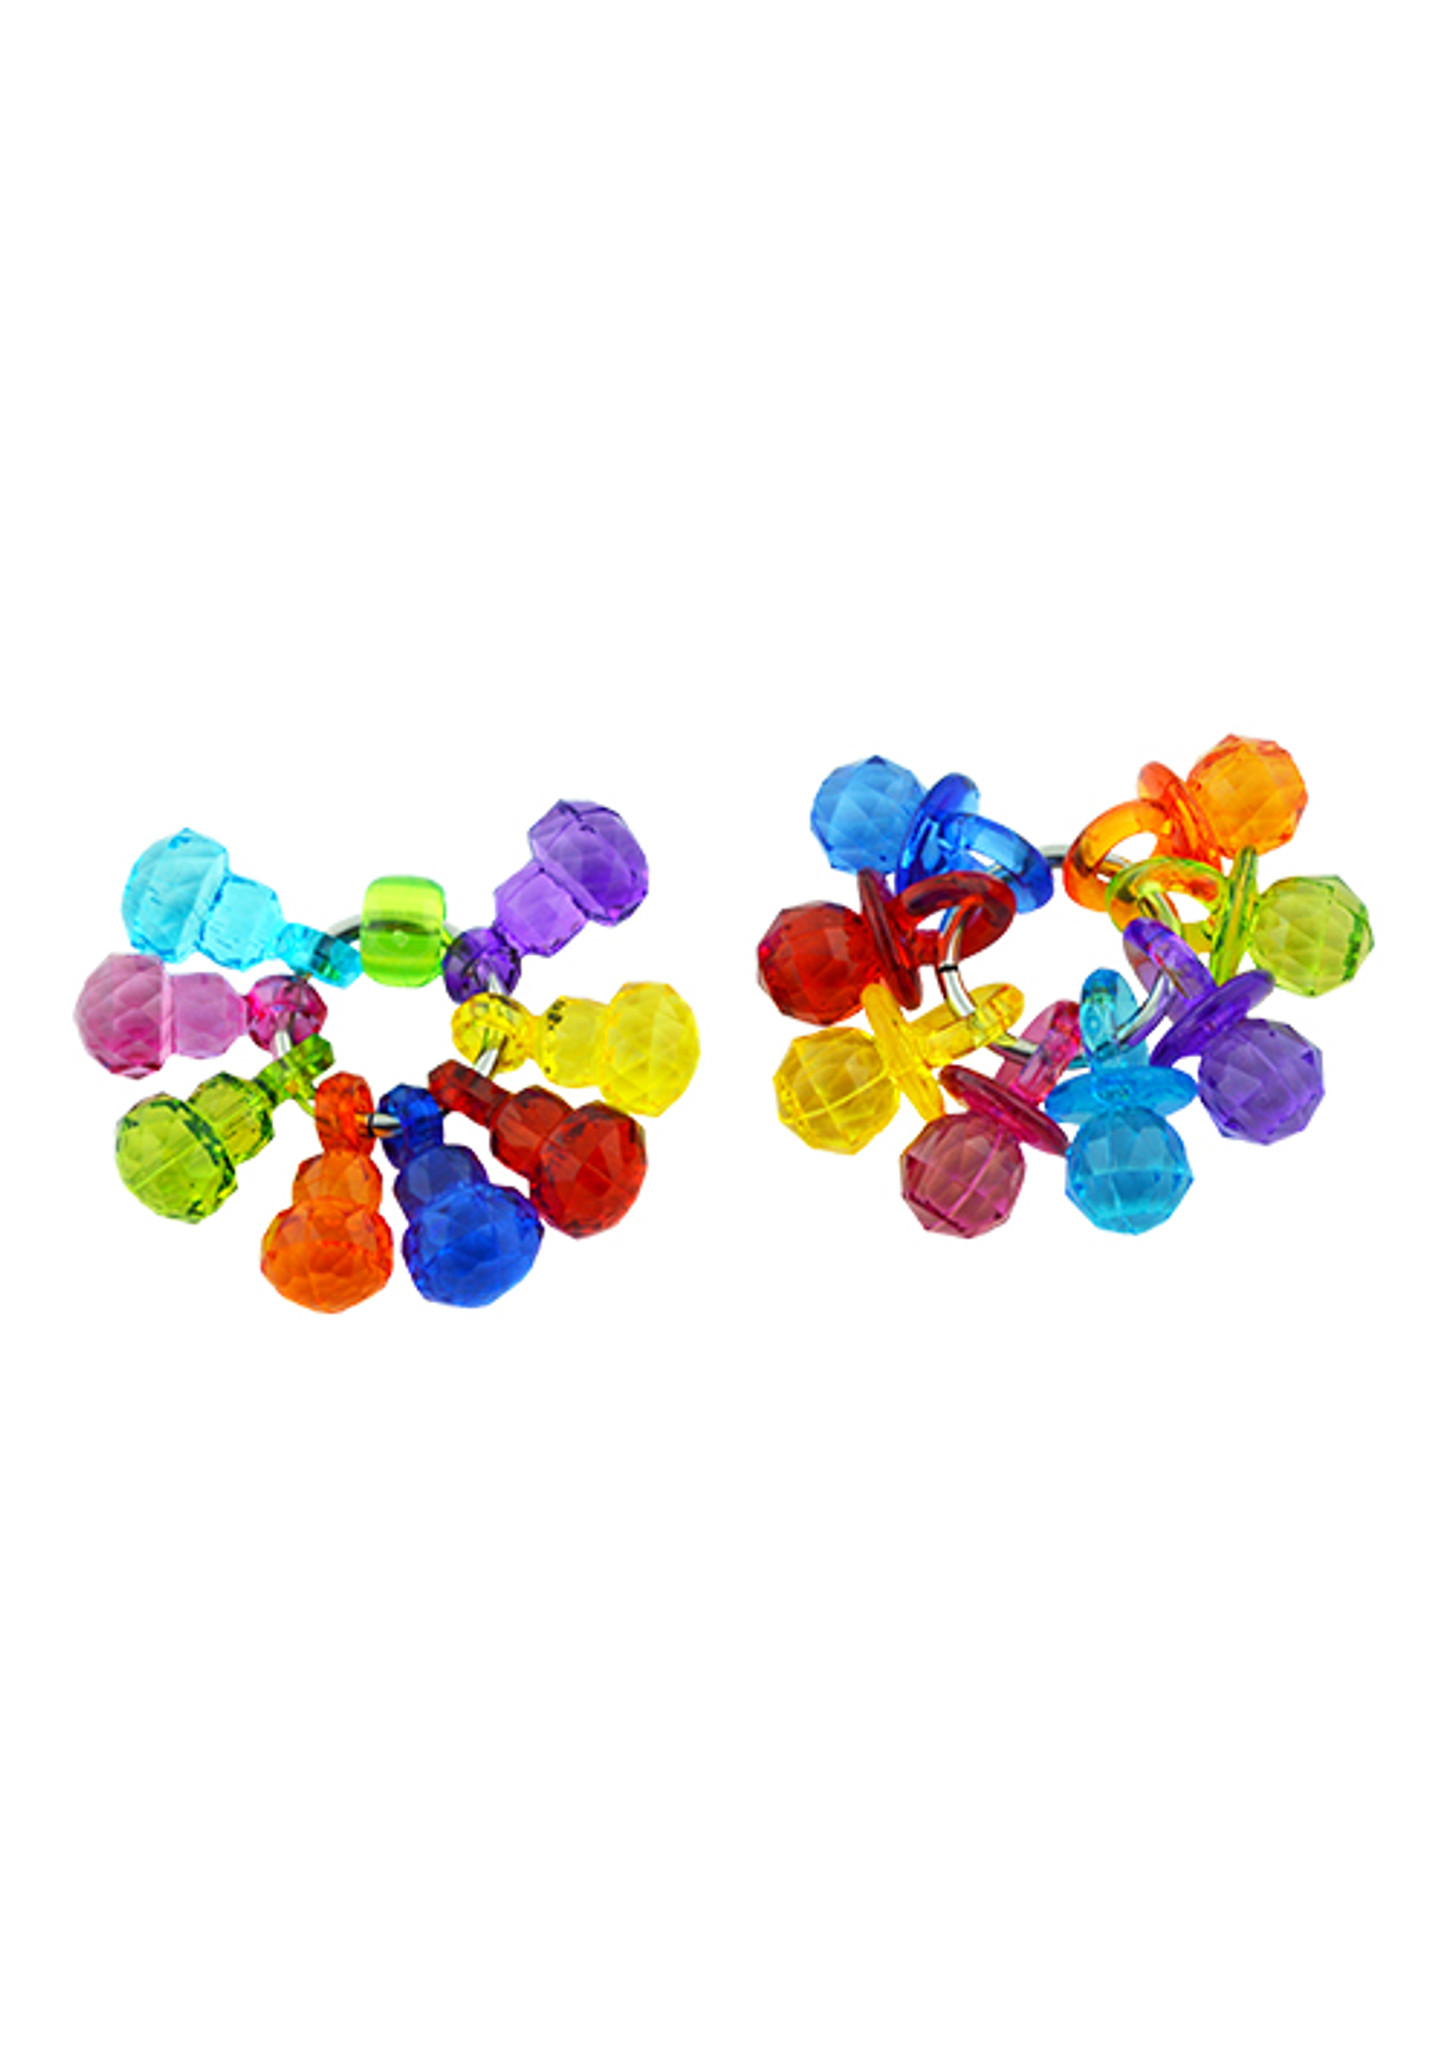 SZ260 - Blink Blink - Small Foot Toy